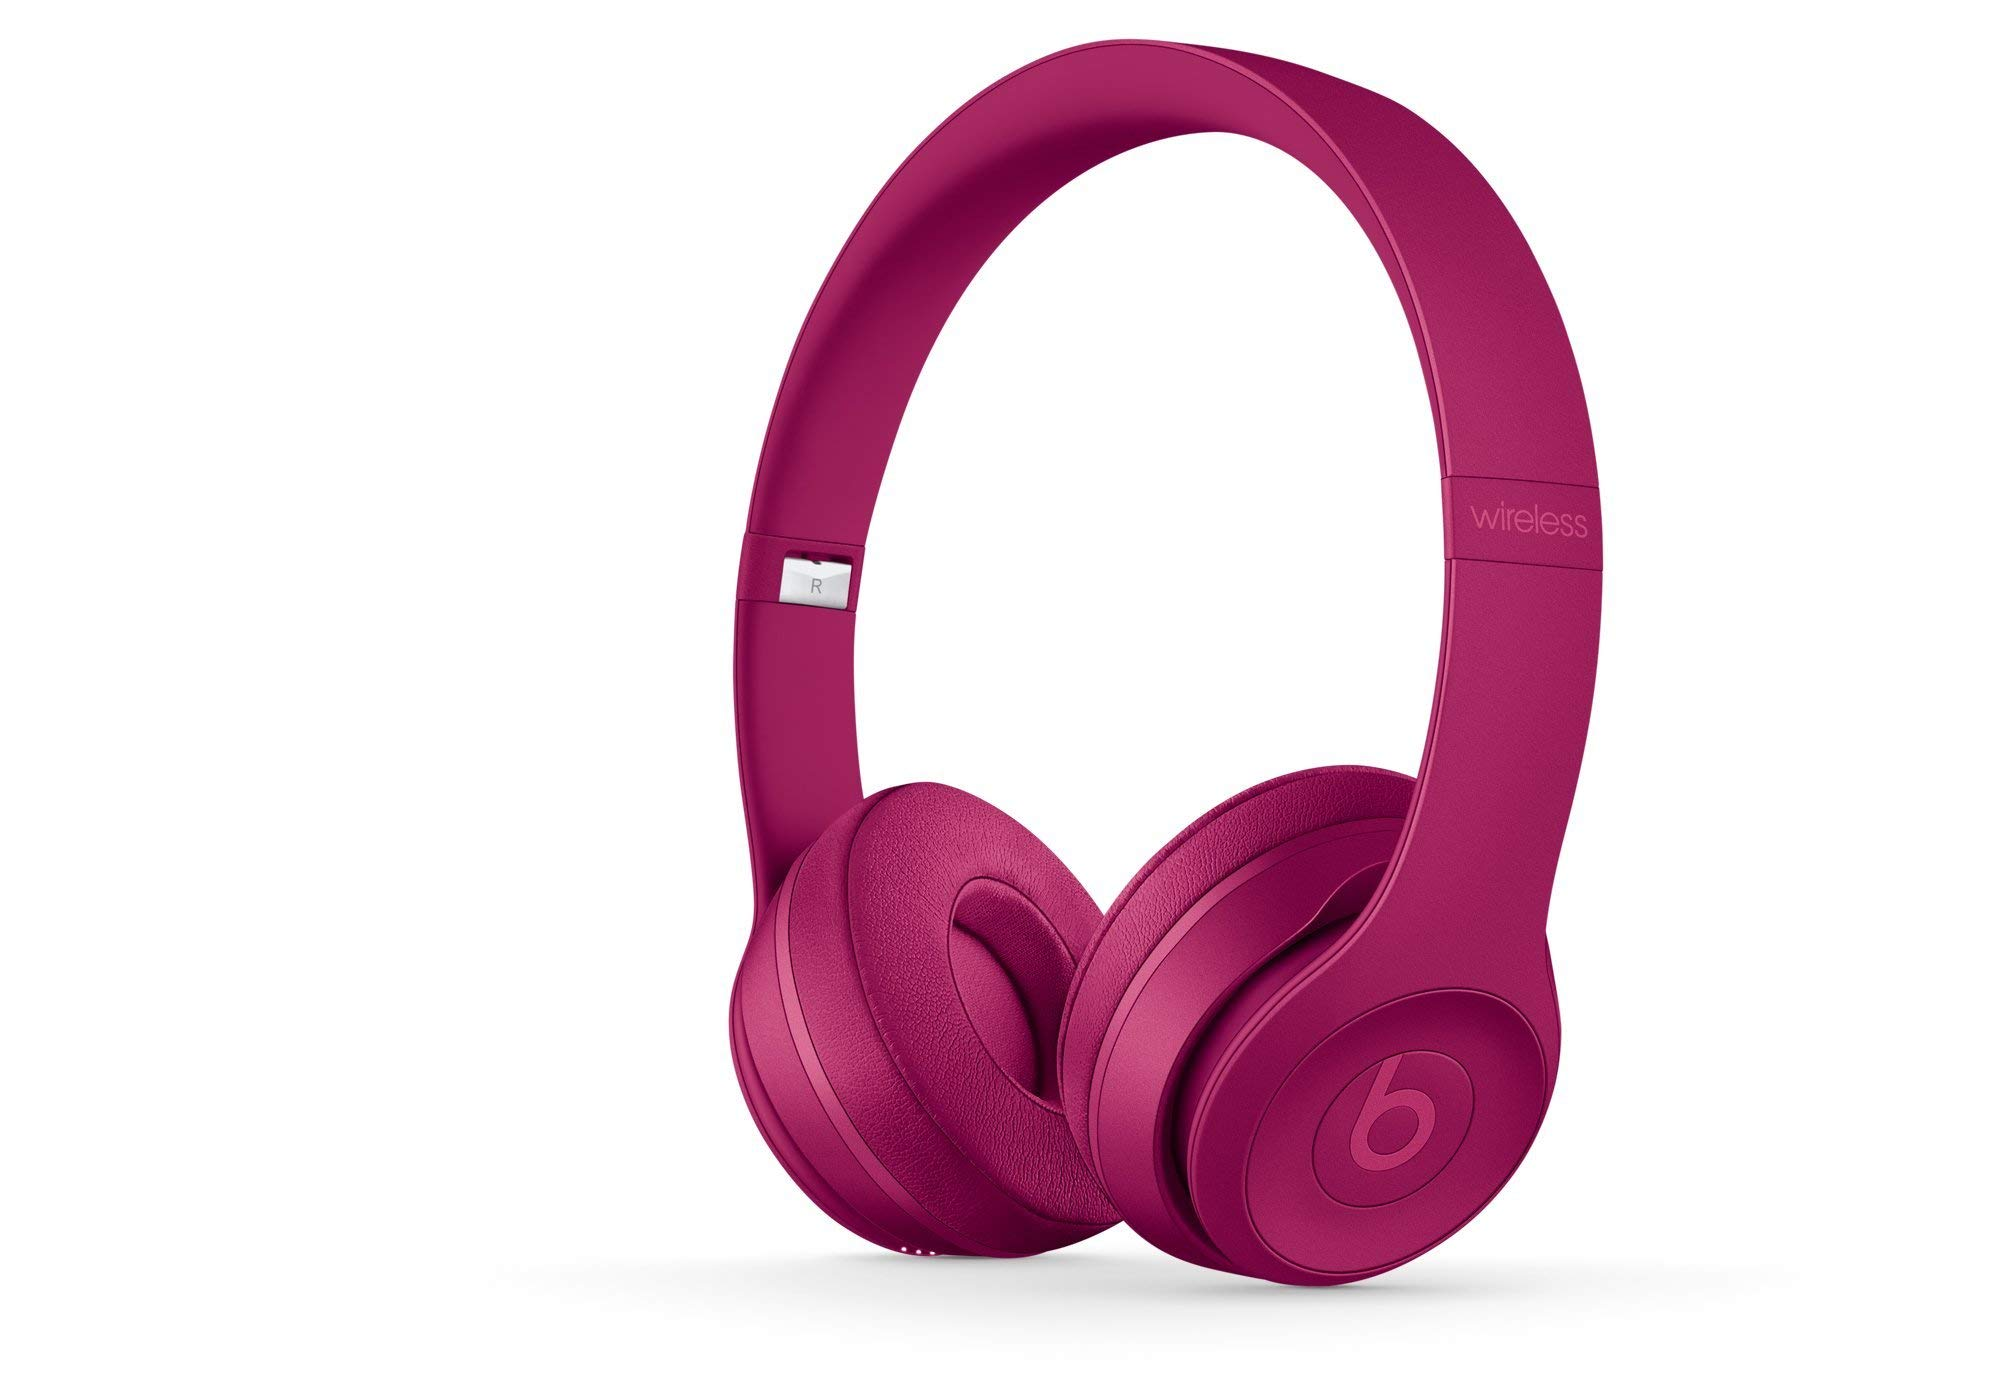 Beats Solo 3 Wireless On-Ear Headphones - Magenta Brick Red with Wicked Cushions (Renewed)